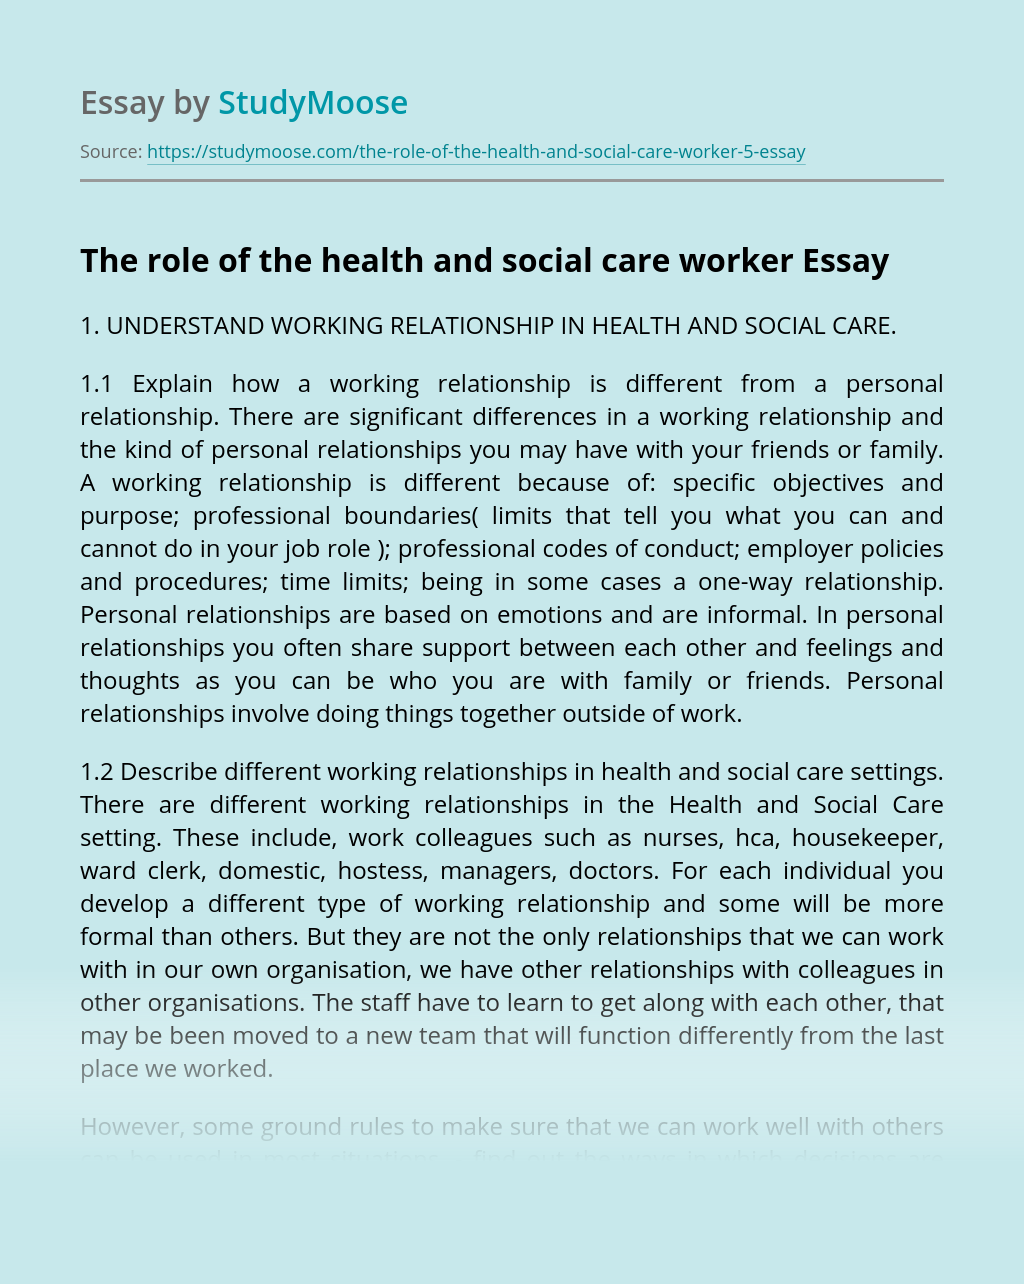 The role of the health and social care worker